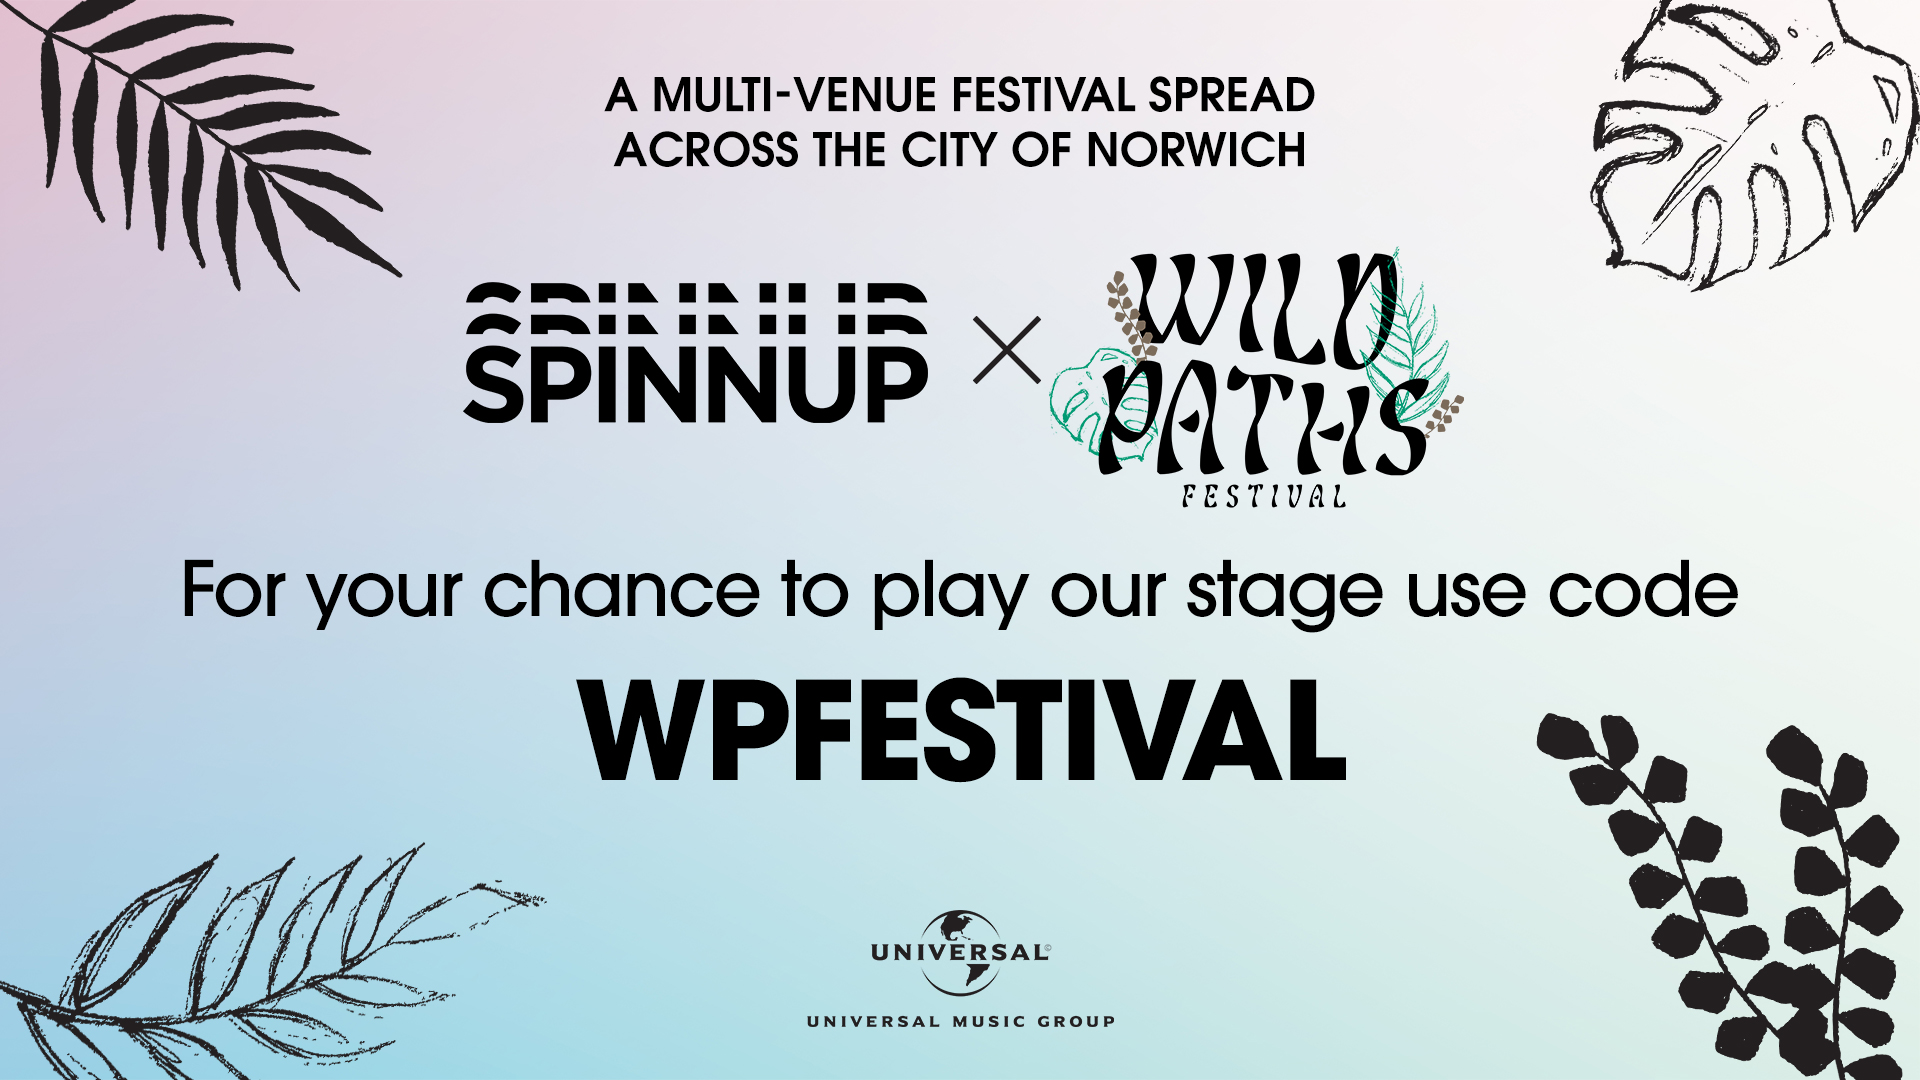 Play at Wild Paths Festival 2019 | Spinnup